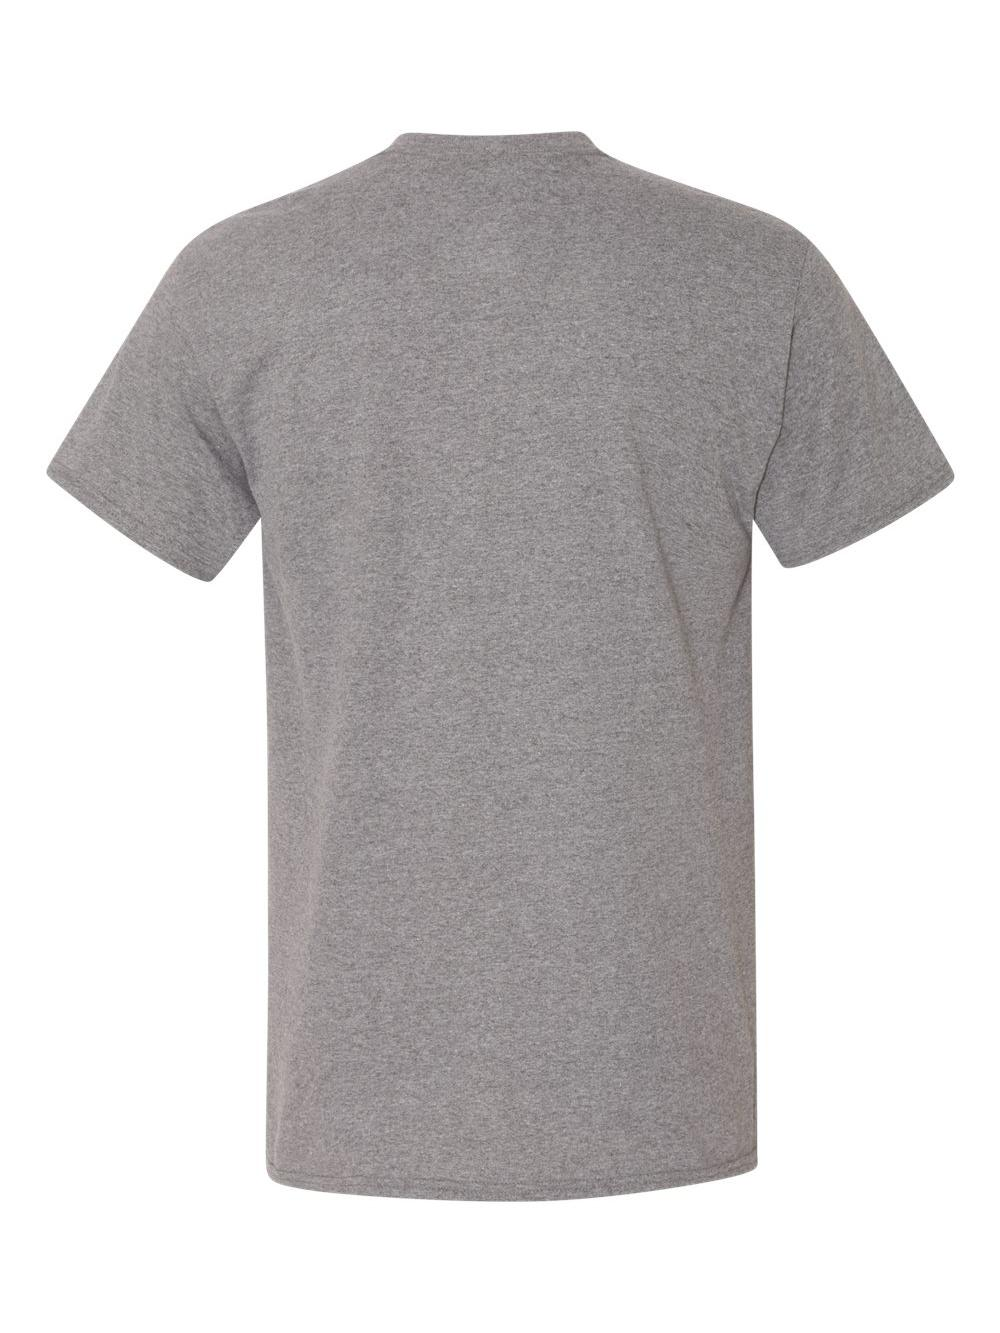 Gildan-Heavy-Cotton-T-Shirt-with-a-Pocket-5300 thumbnail 10